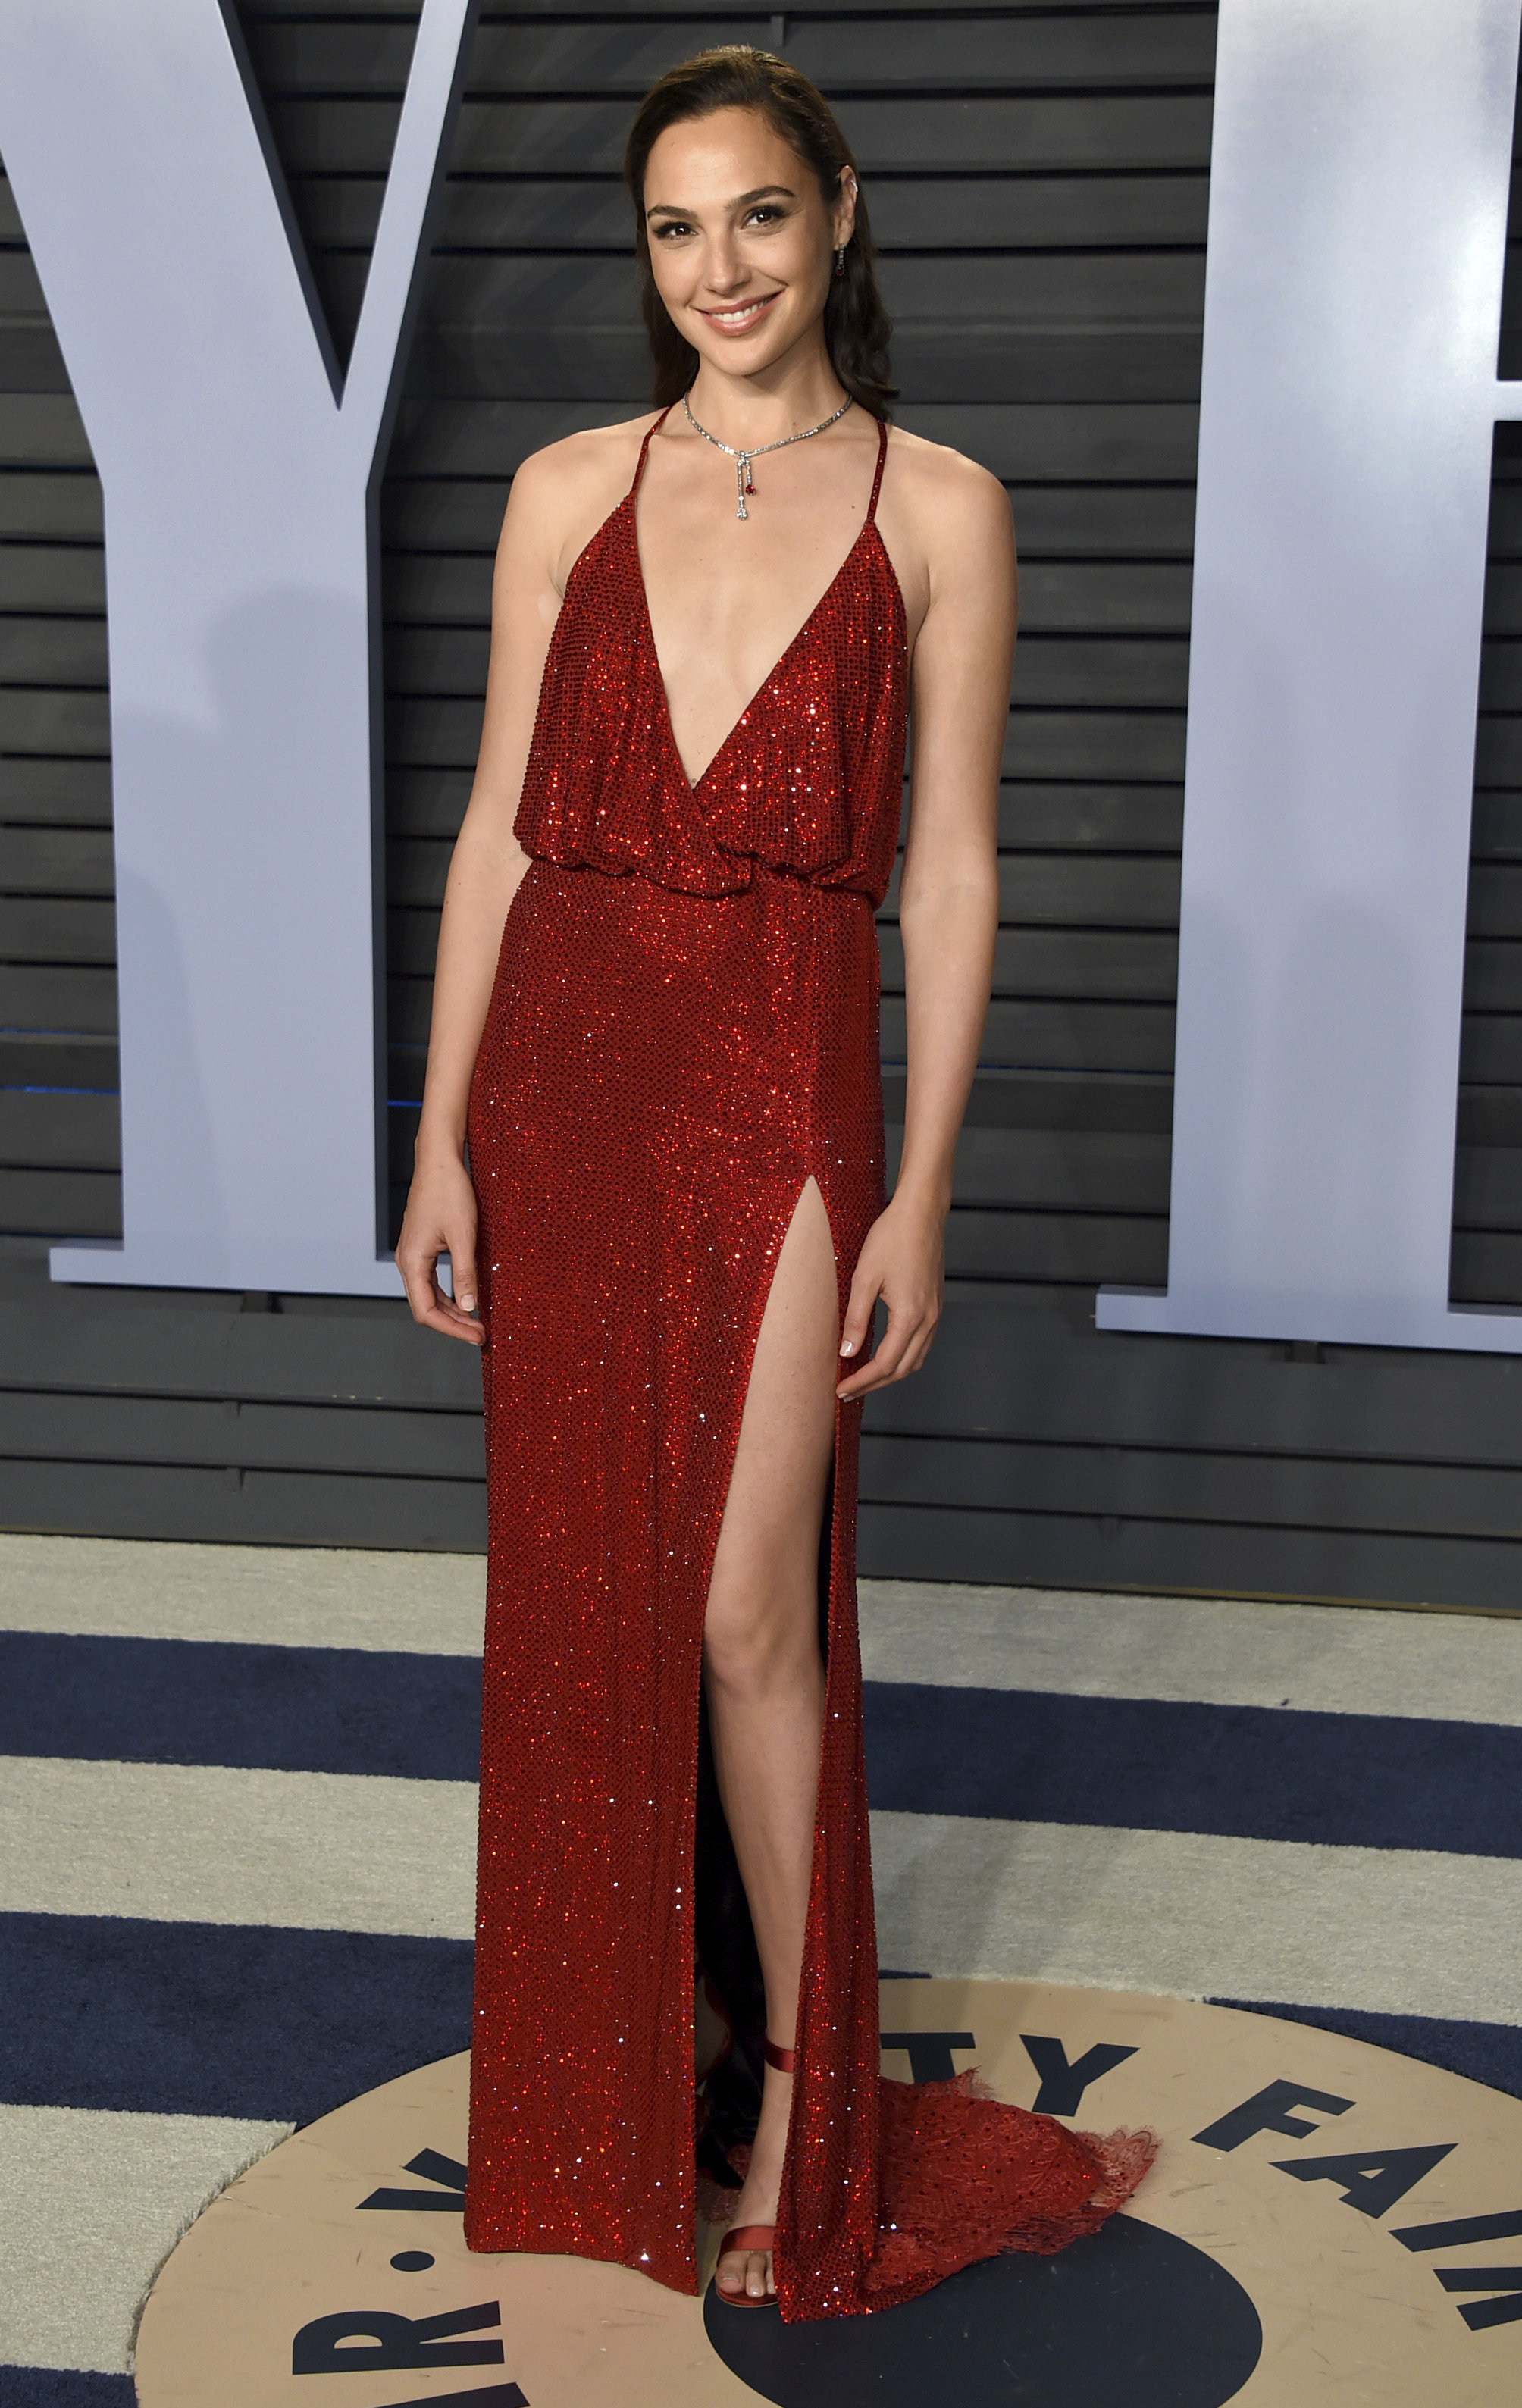 Gal Gadot arrives at the Vanity Fair Oscar Party on Sunday, March 4, 2018, in Beverly Hills, Calif.